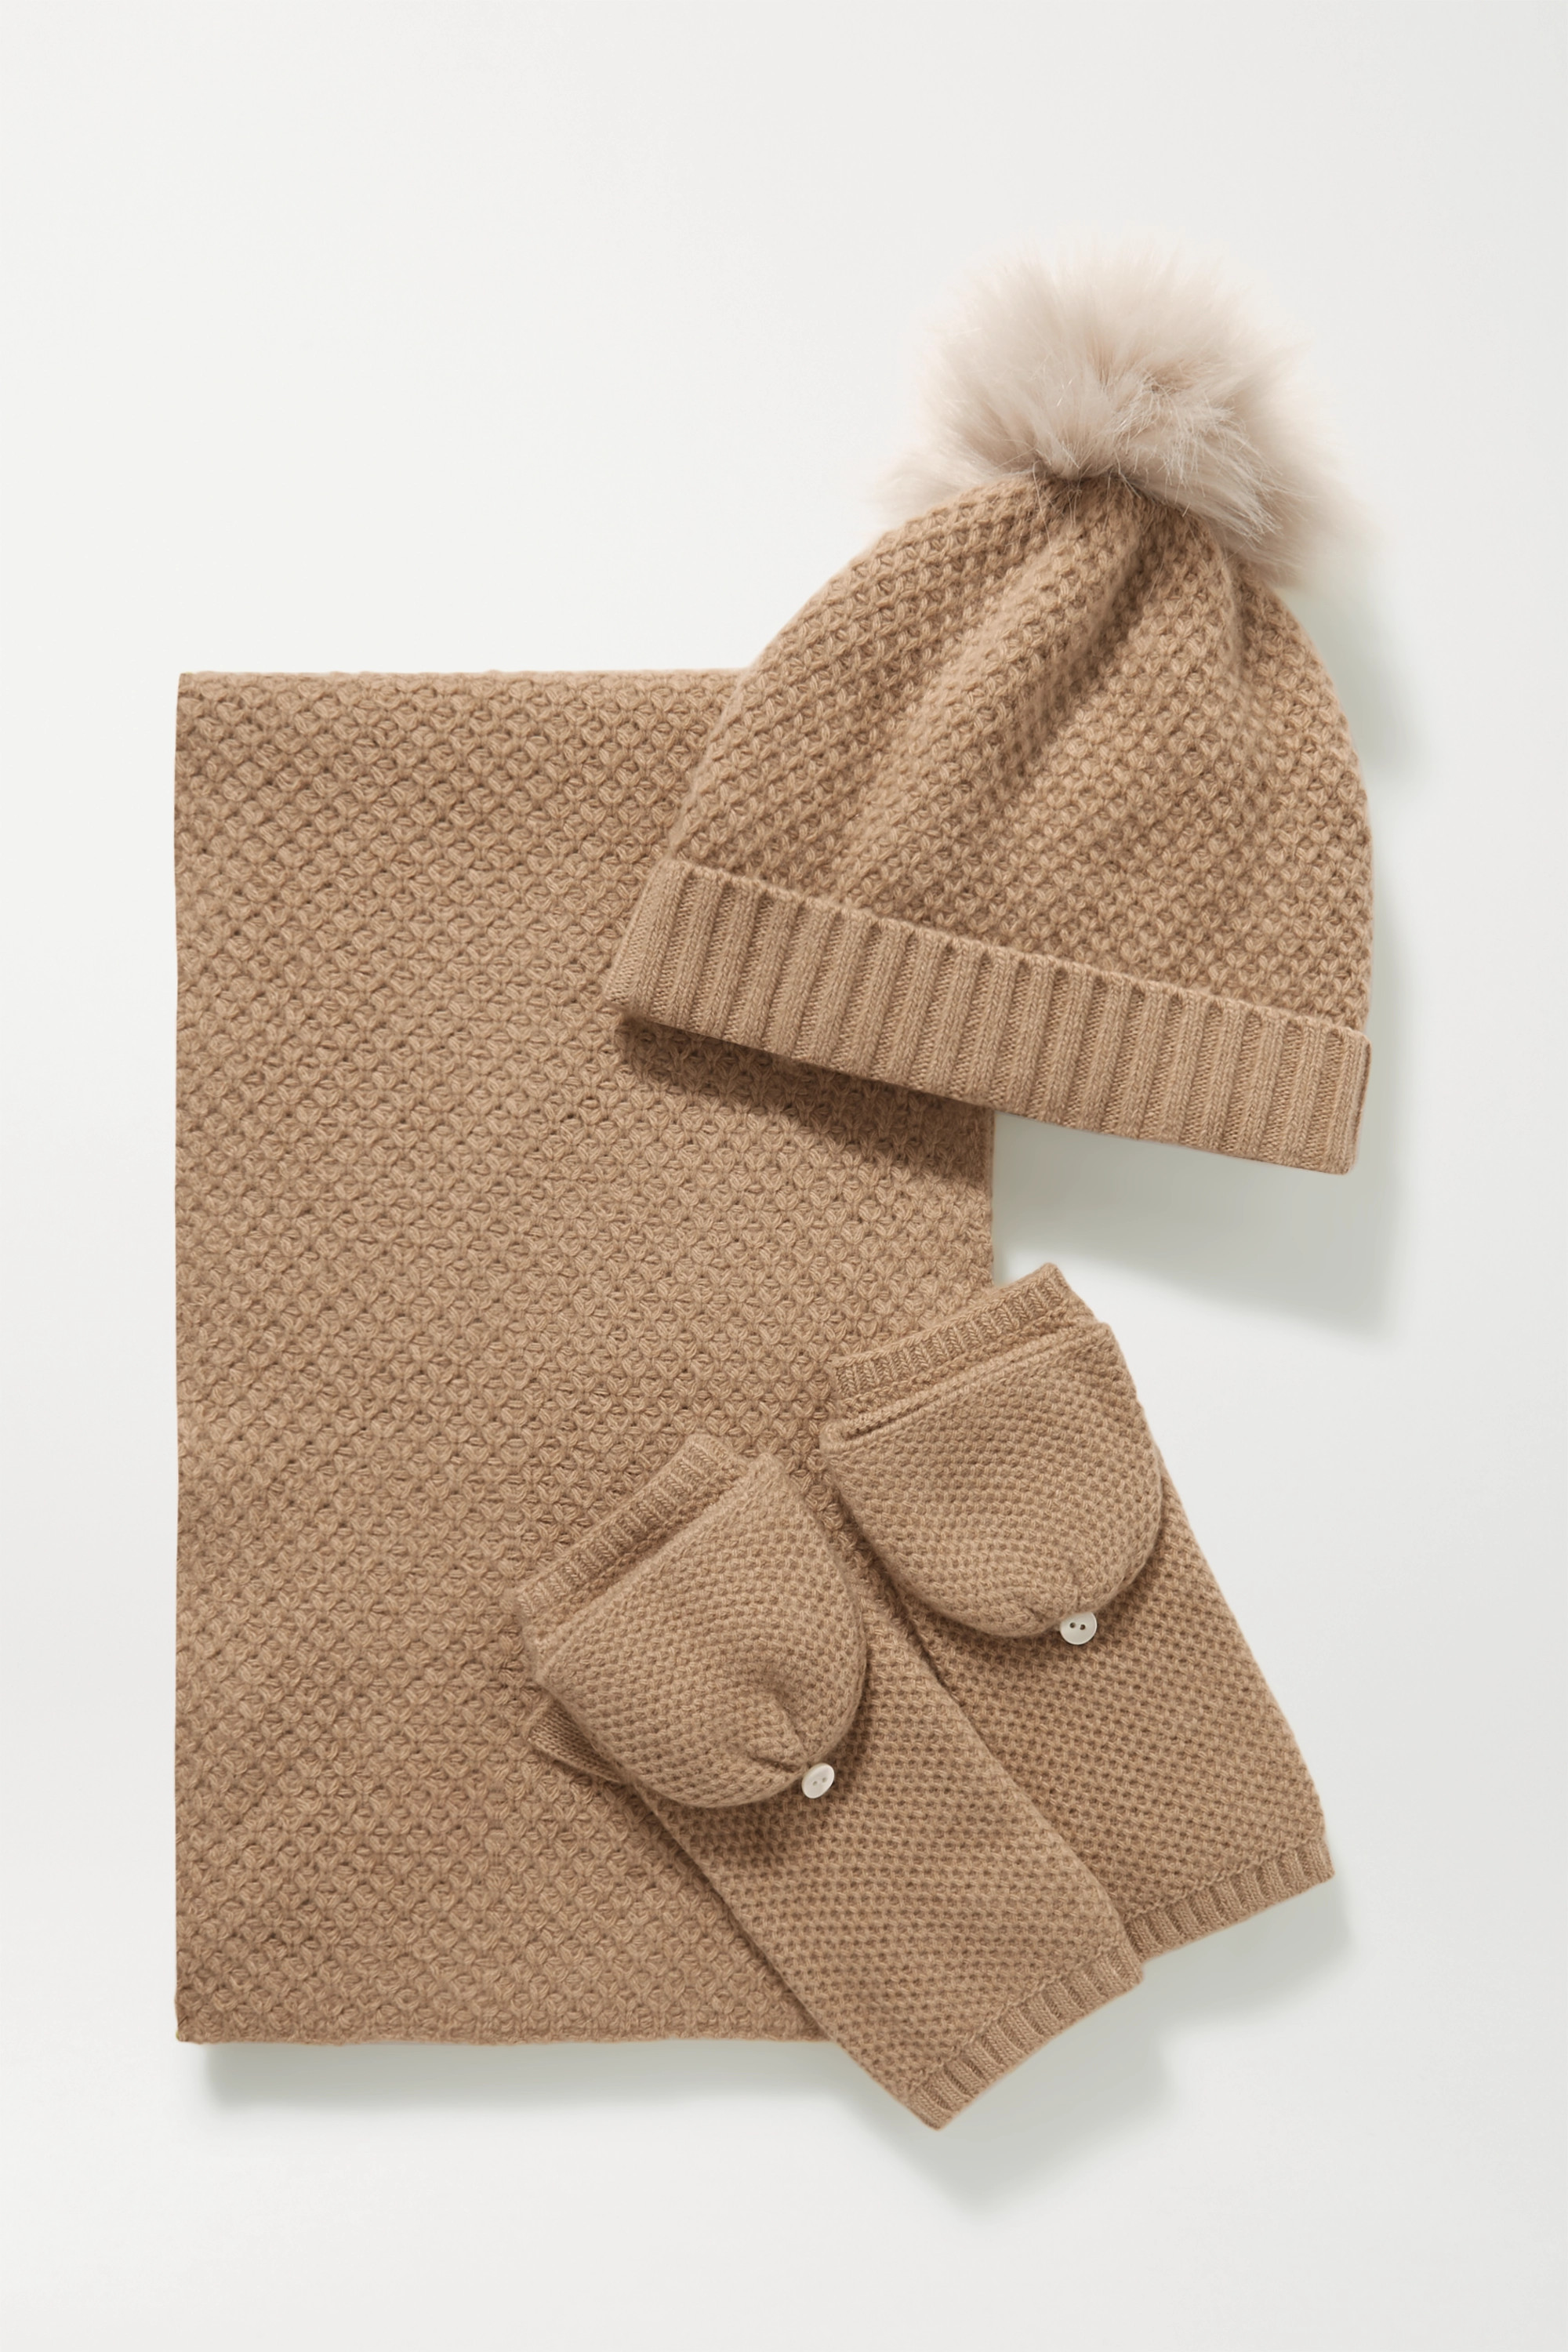 Portolano Faux fur-trimmed cashmere beanie, gloves and scarf set